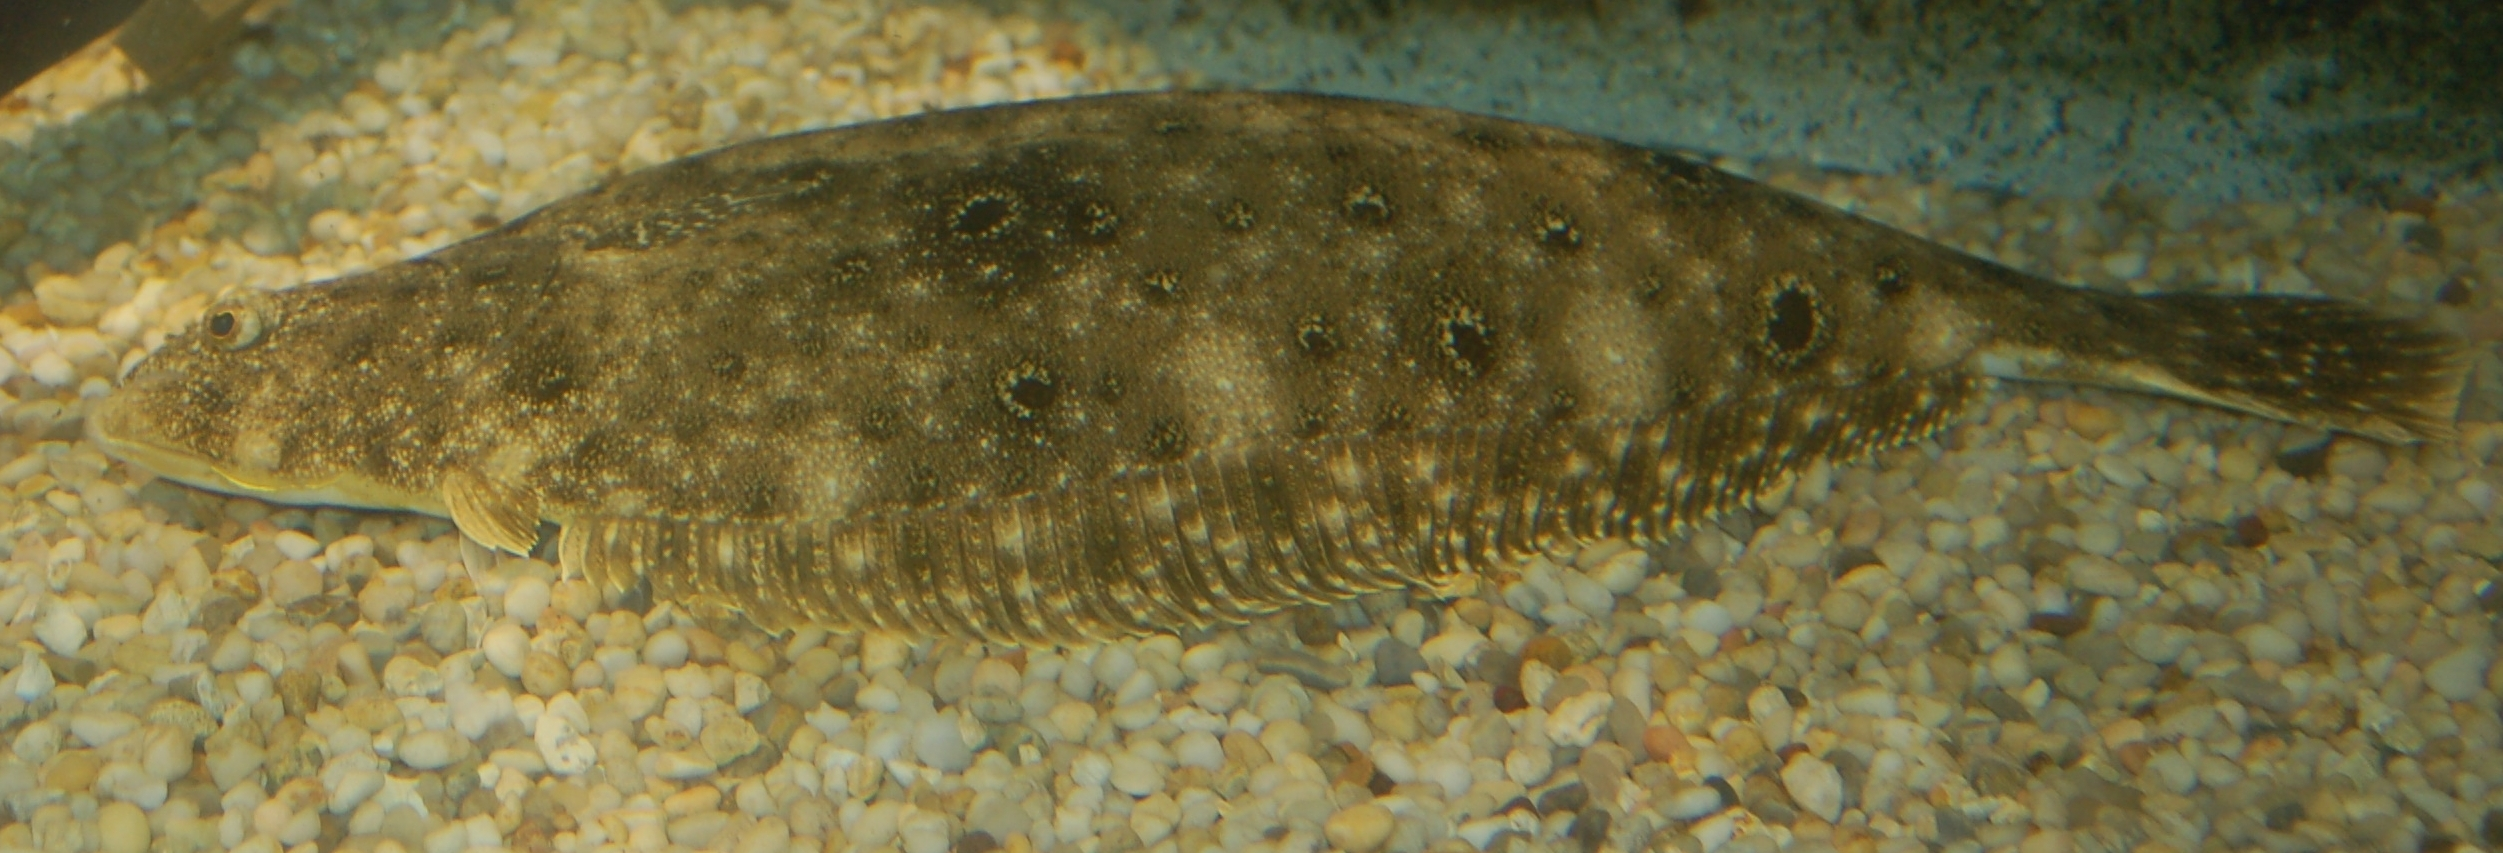 summer flounder resting on a pebbly bottom